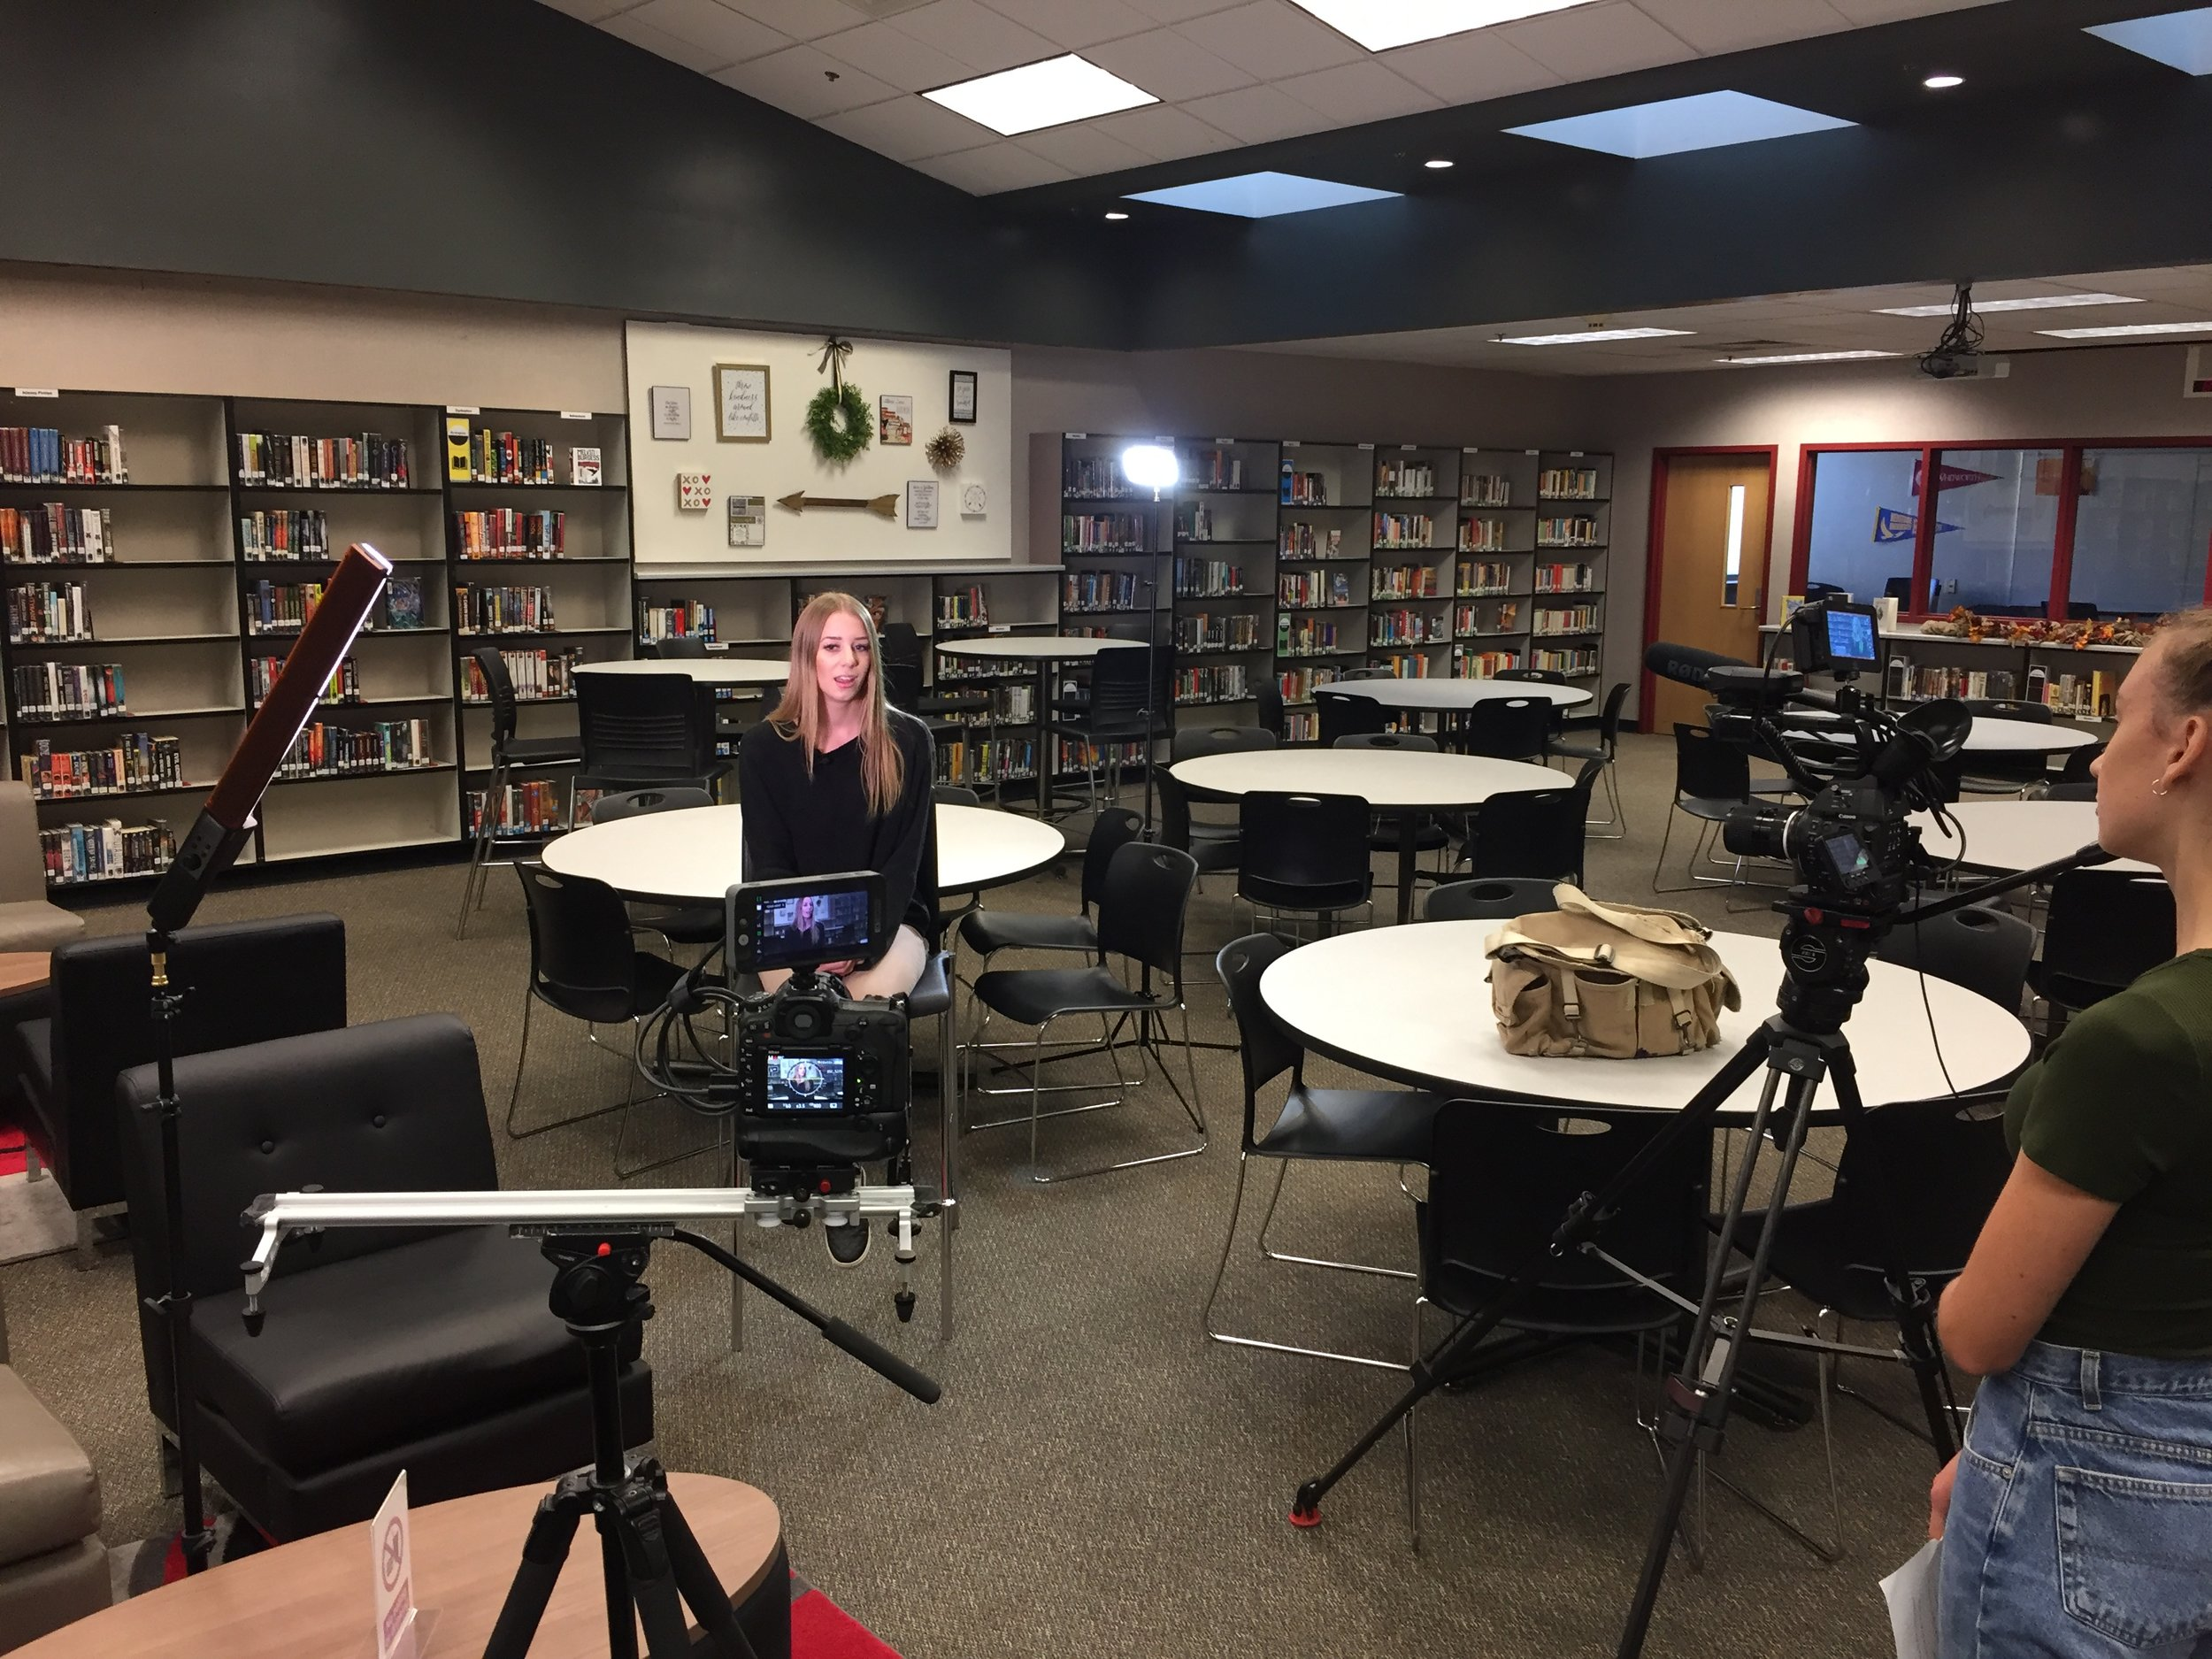 Interview inside the library. Taylor (left) asks questions while Andie (behind Taylor) operates the camera.